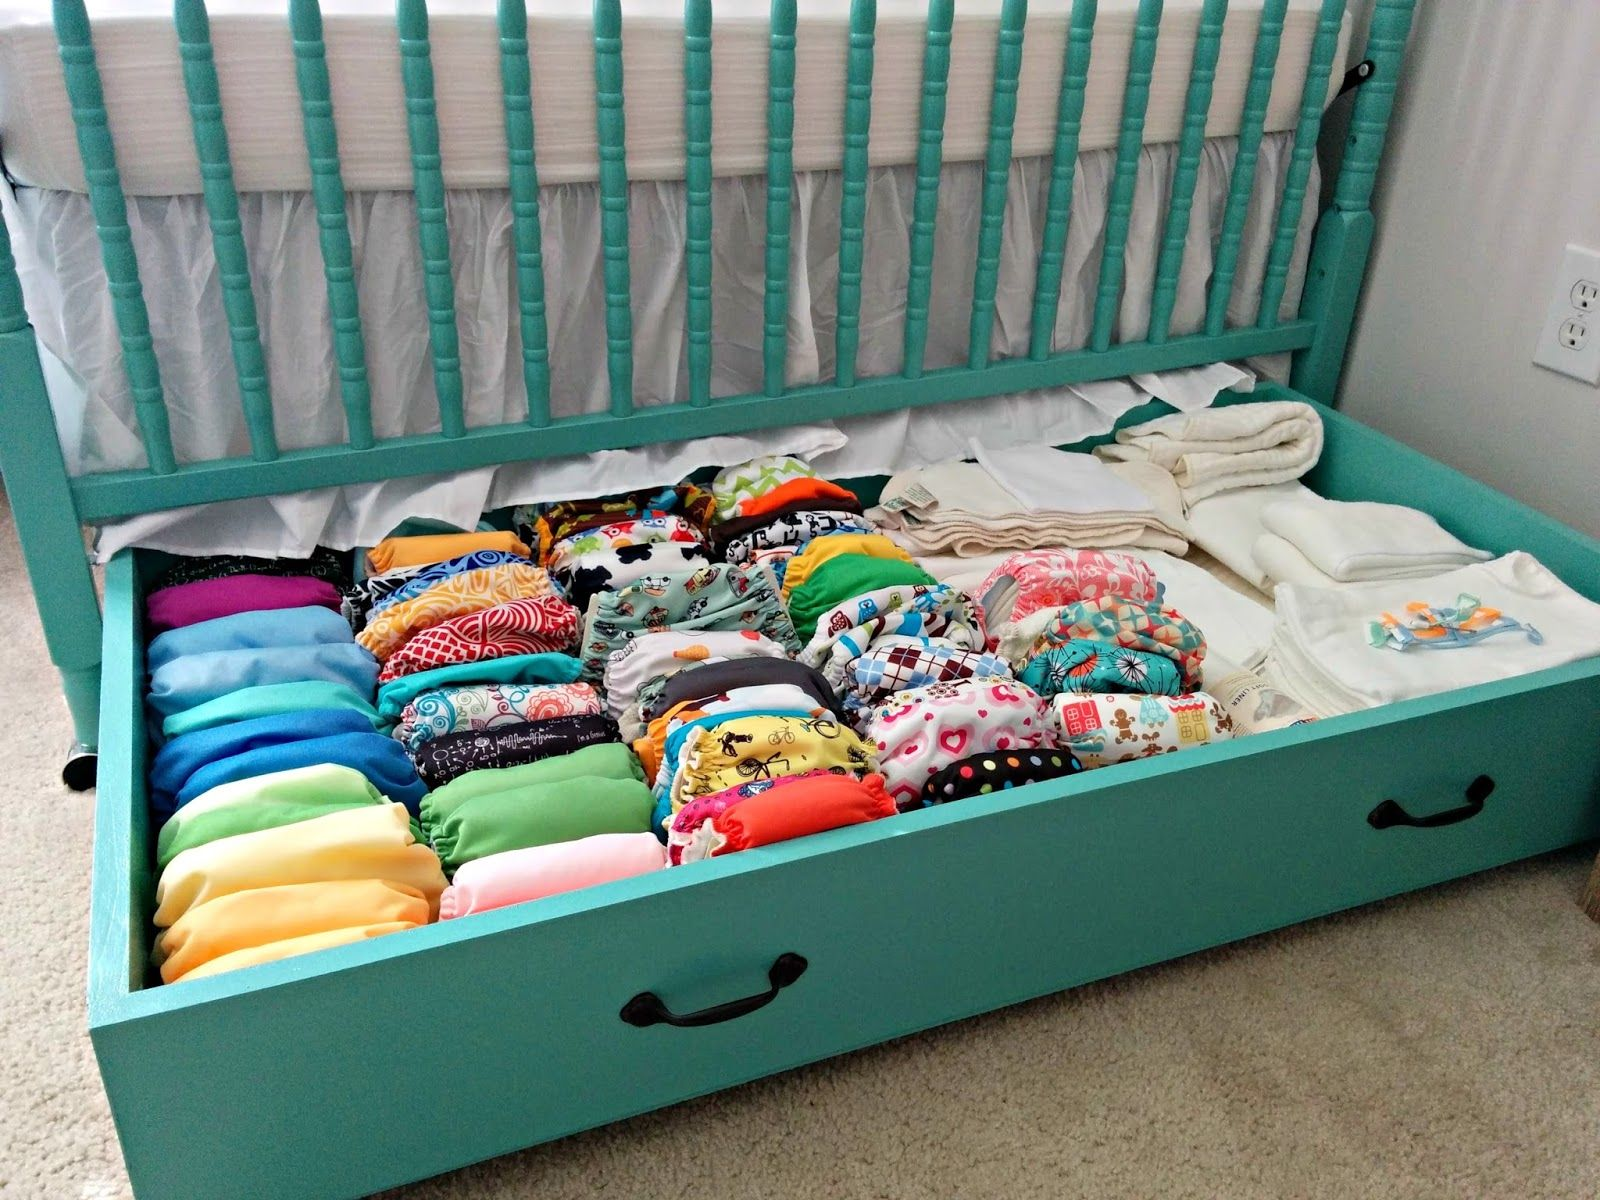 Used crib for sale toronto - Diy Baby Nursery Organizing Idea A Simple Roll Out Container Like Used For Wrapping Paper Under The Crib Gives You A Lot More Space To Store Baby Stuff